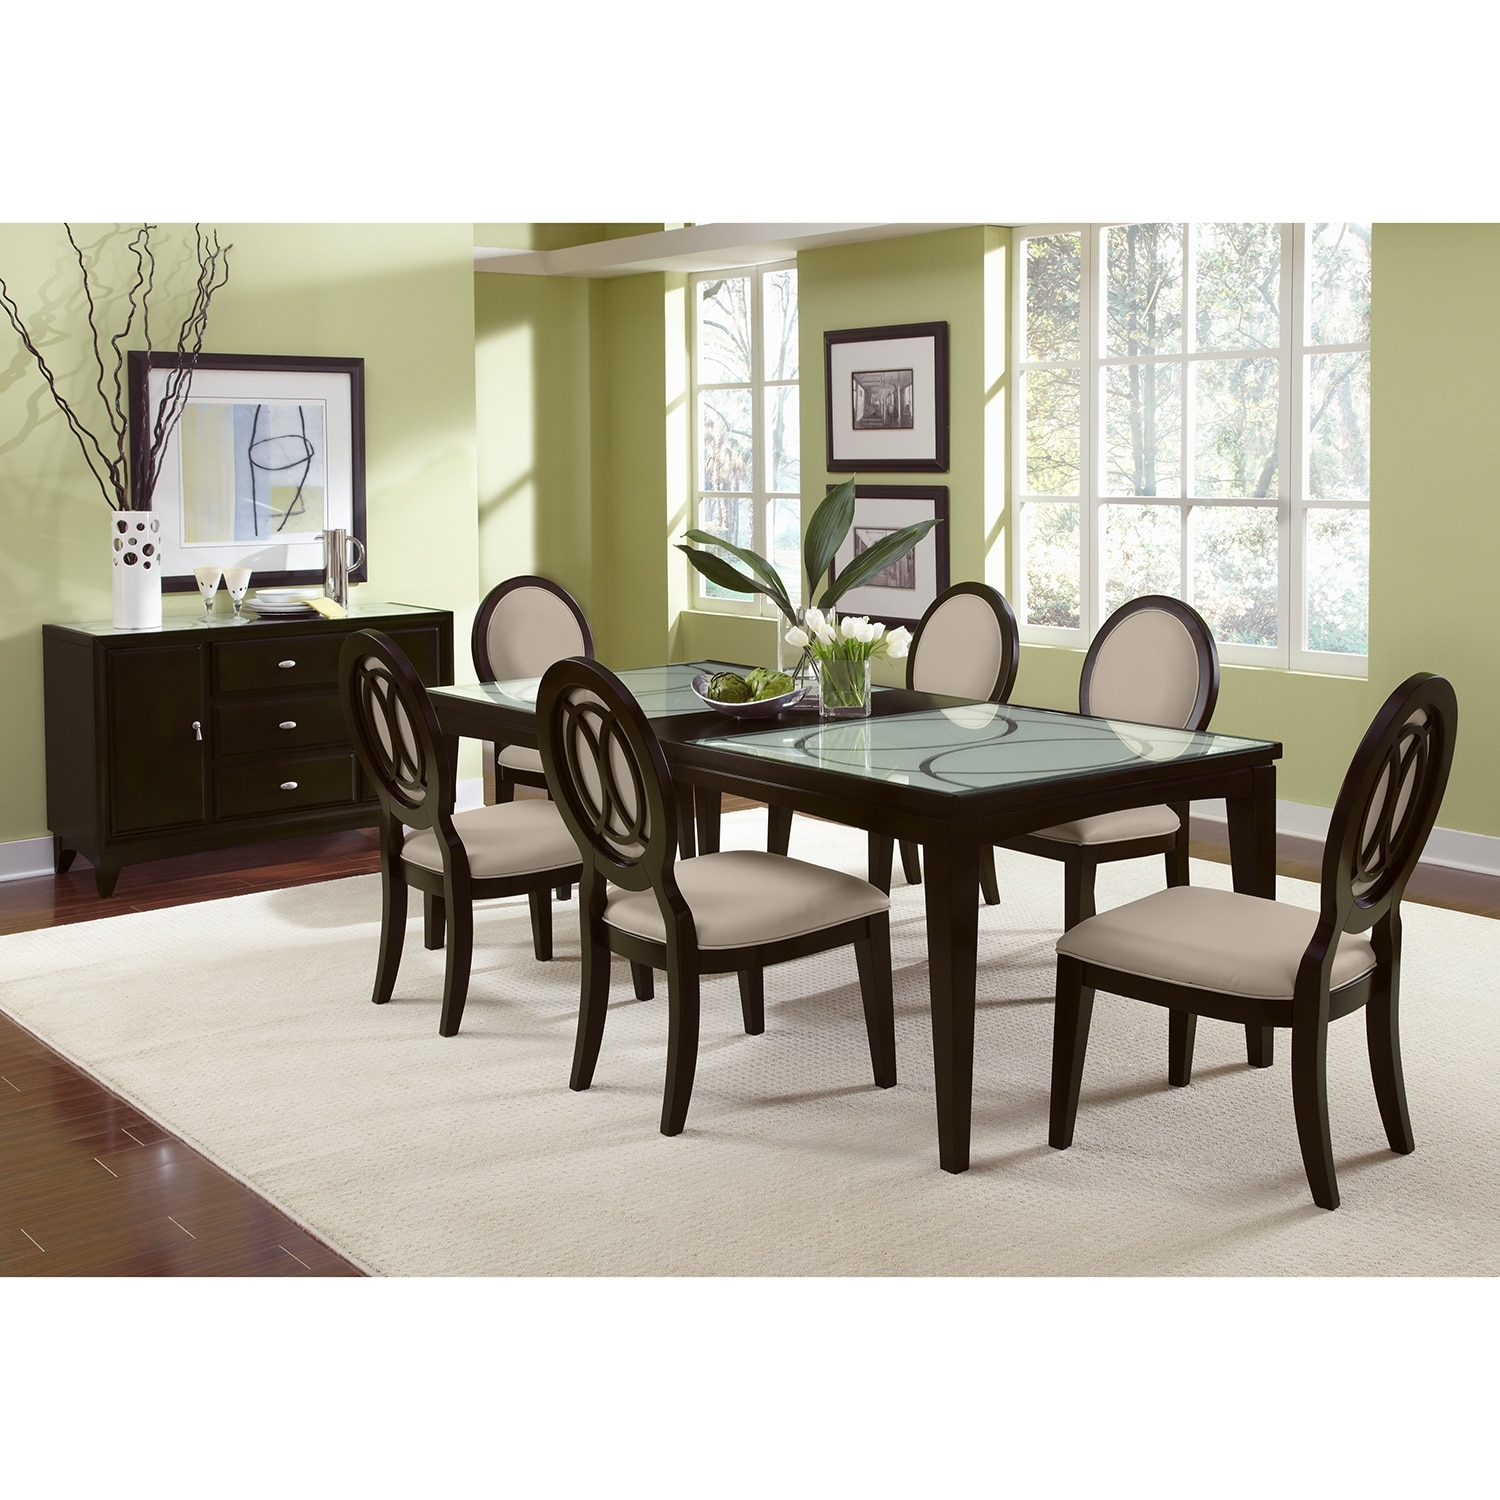 Dining Room Table Sets: Cosmo Table And 6 Chairs - Merlot